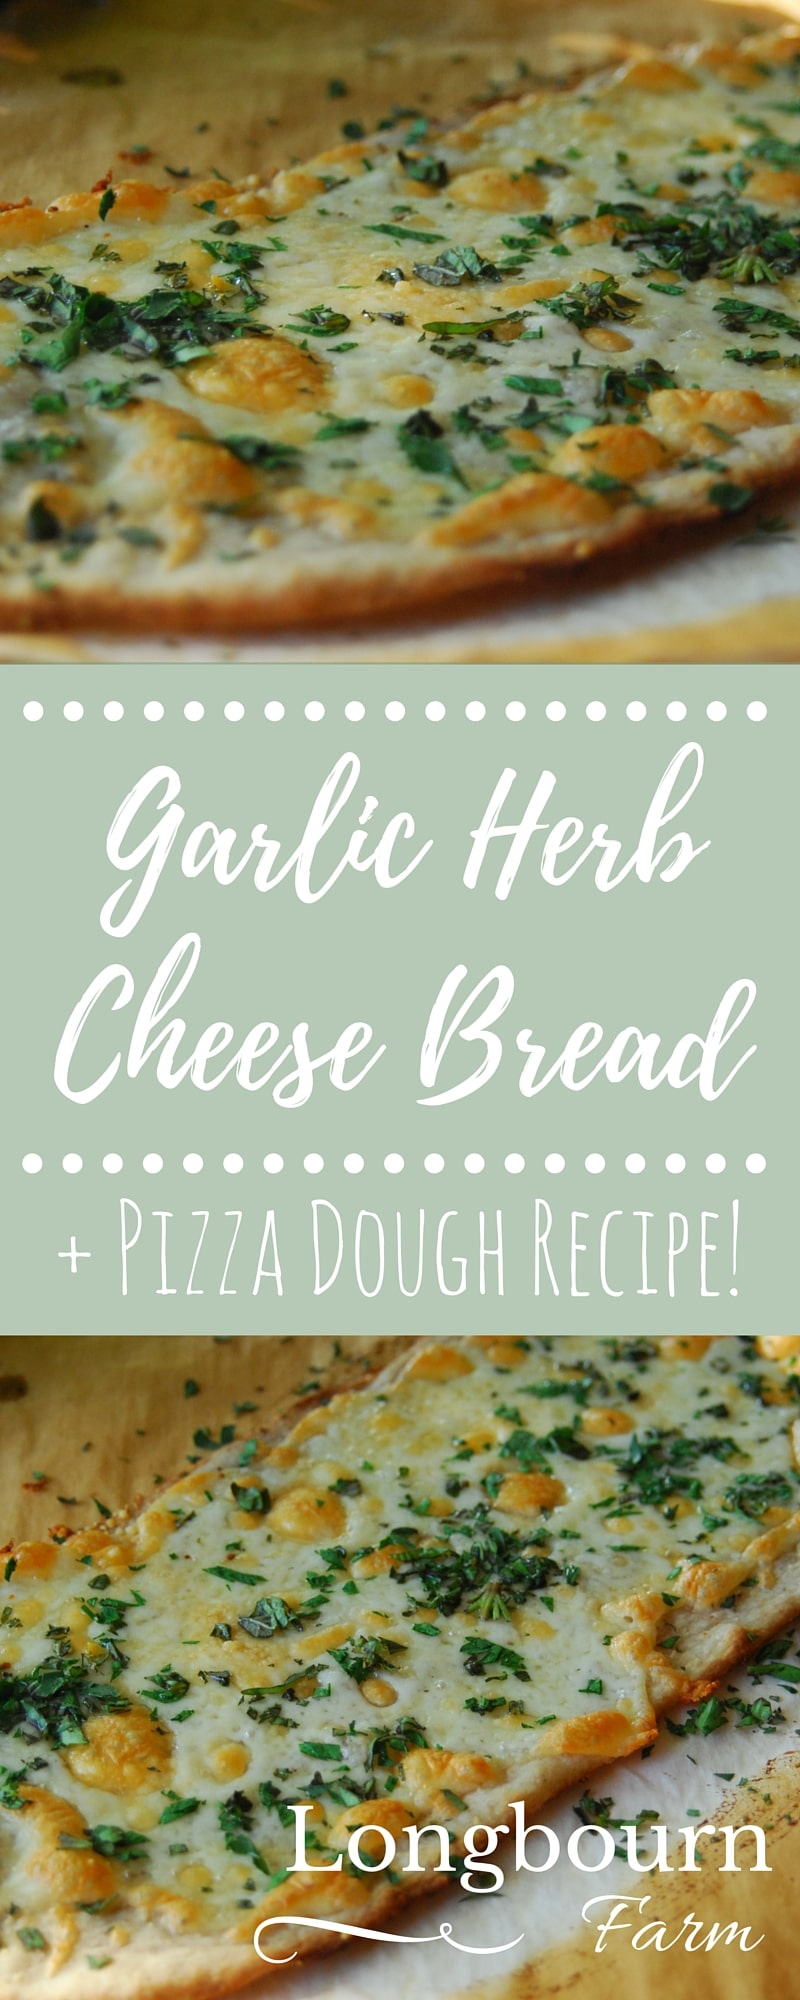 This Garlic Cheese Bread is homemade, freezer friendly, and packed with flavor. It is a showstopper side for any pizza, pasta, or salad.